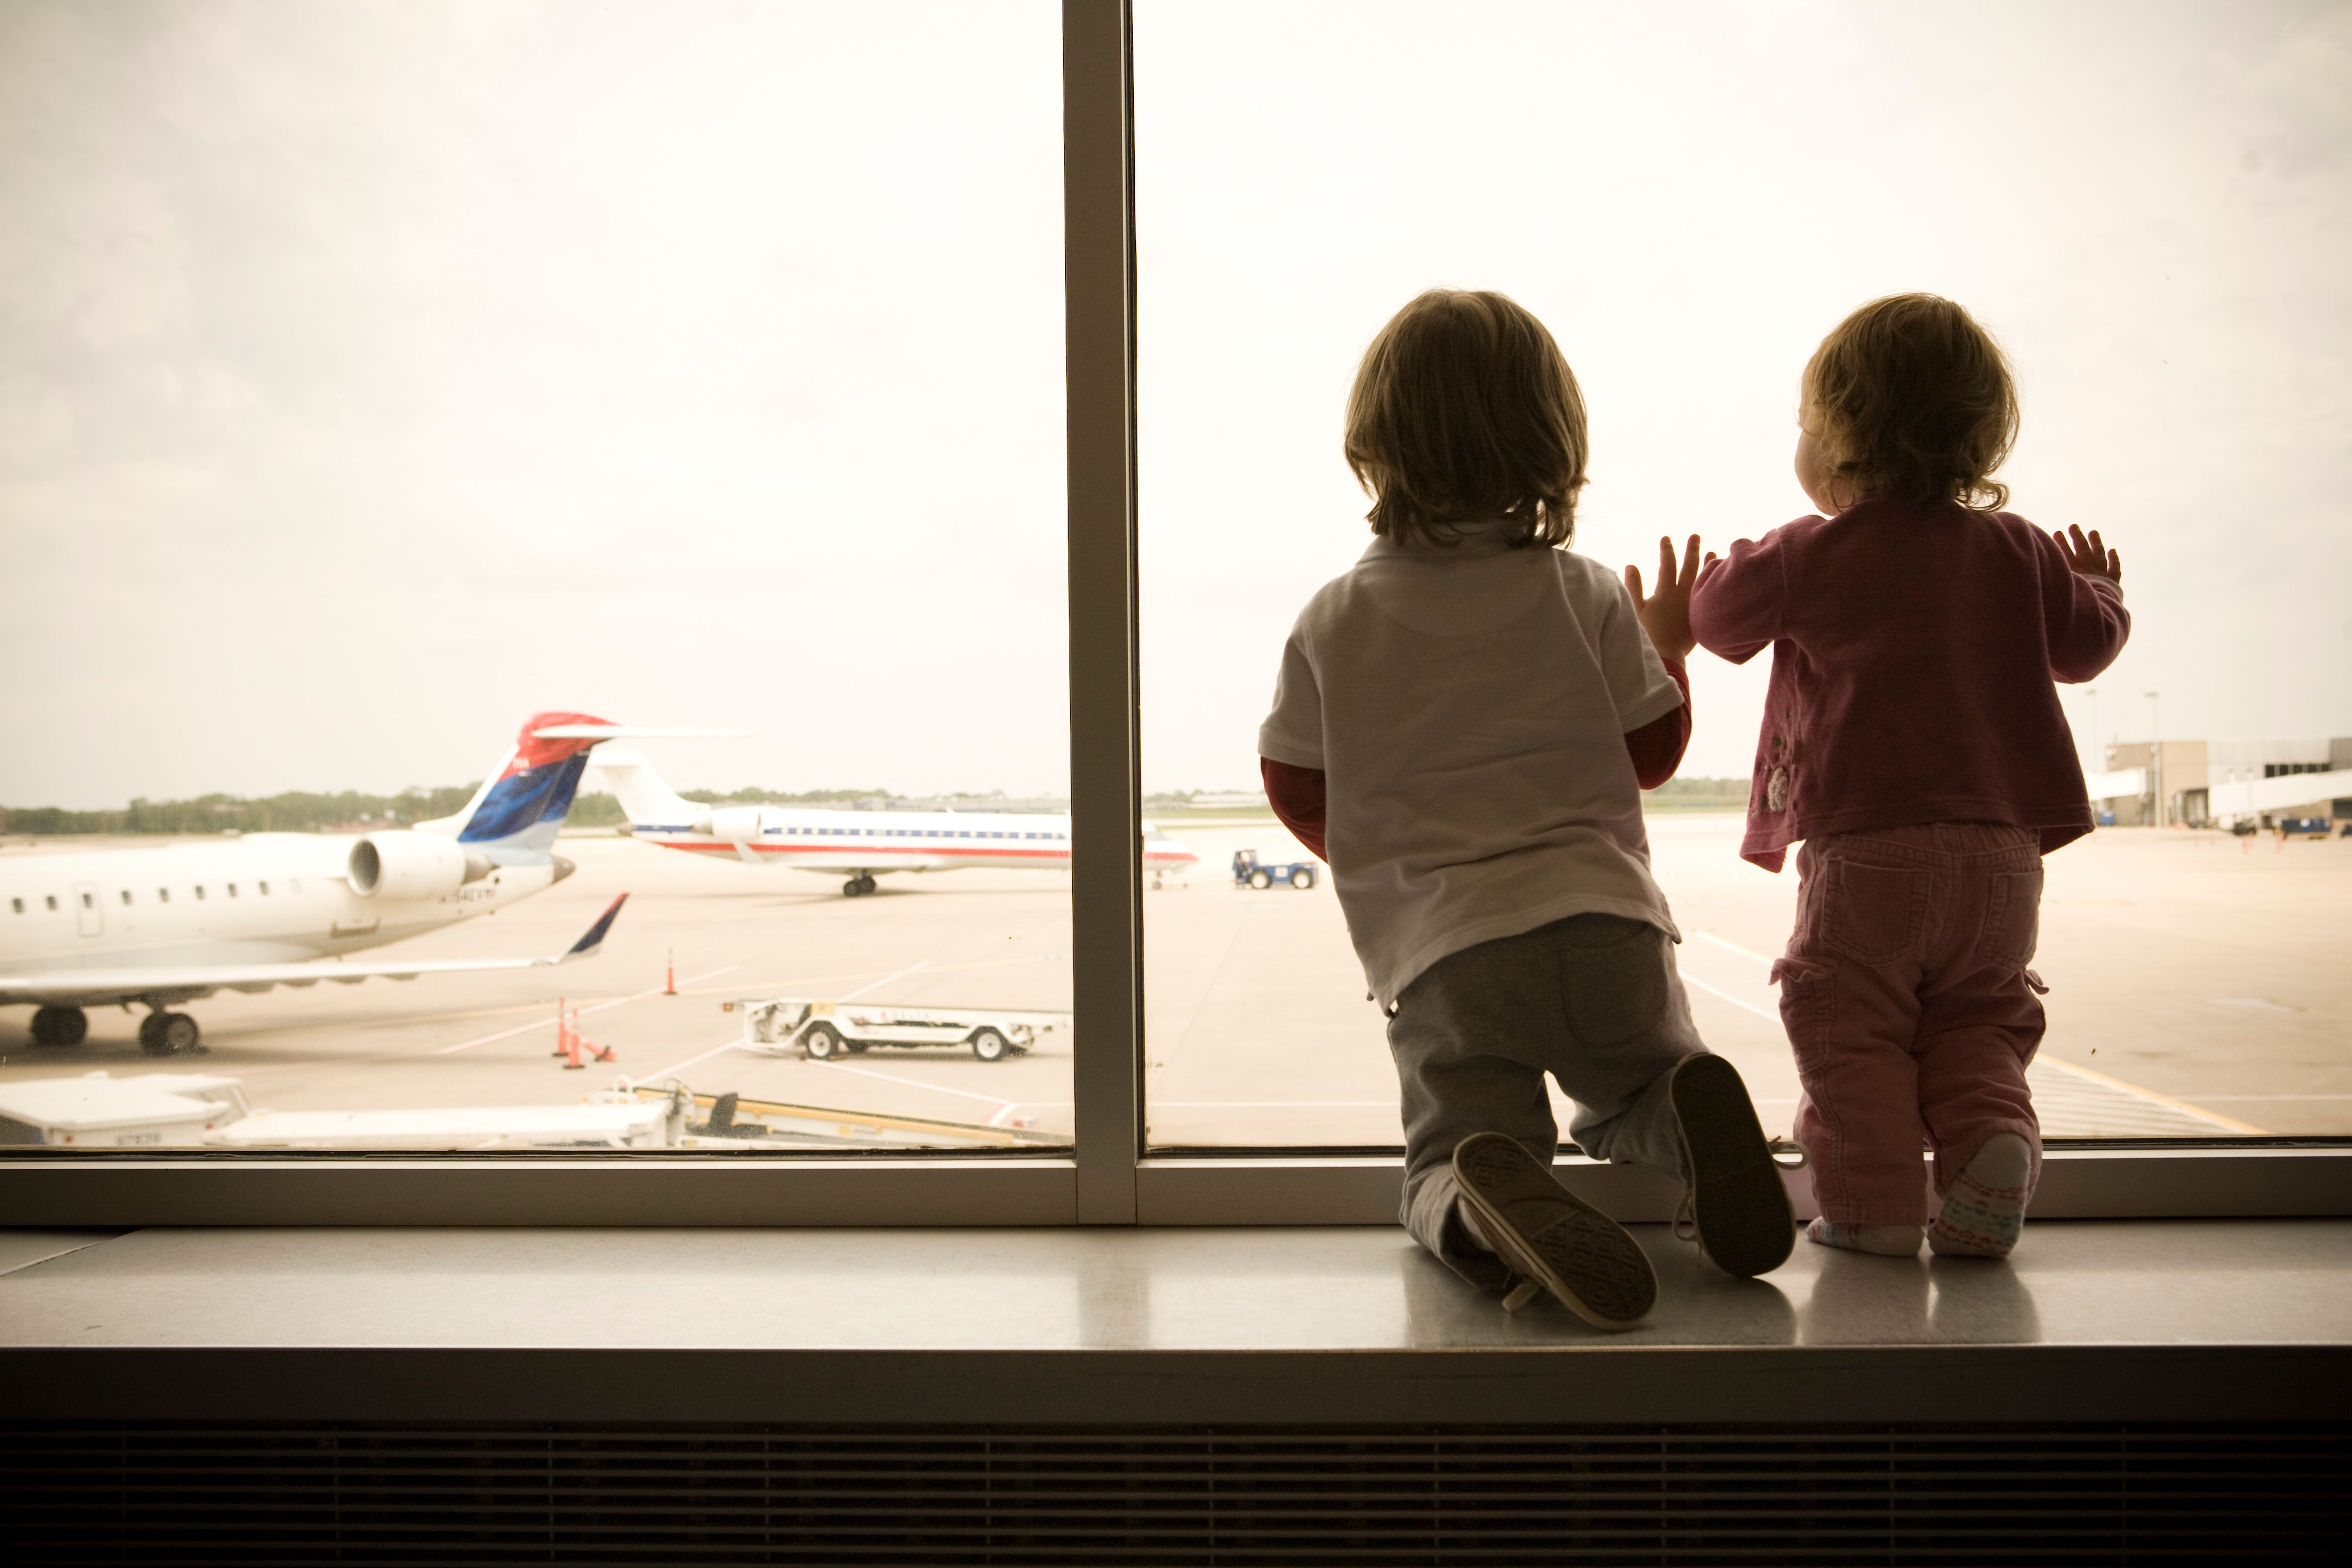 Things You Need To Know Before Flying With